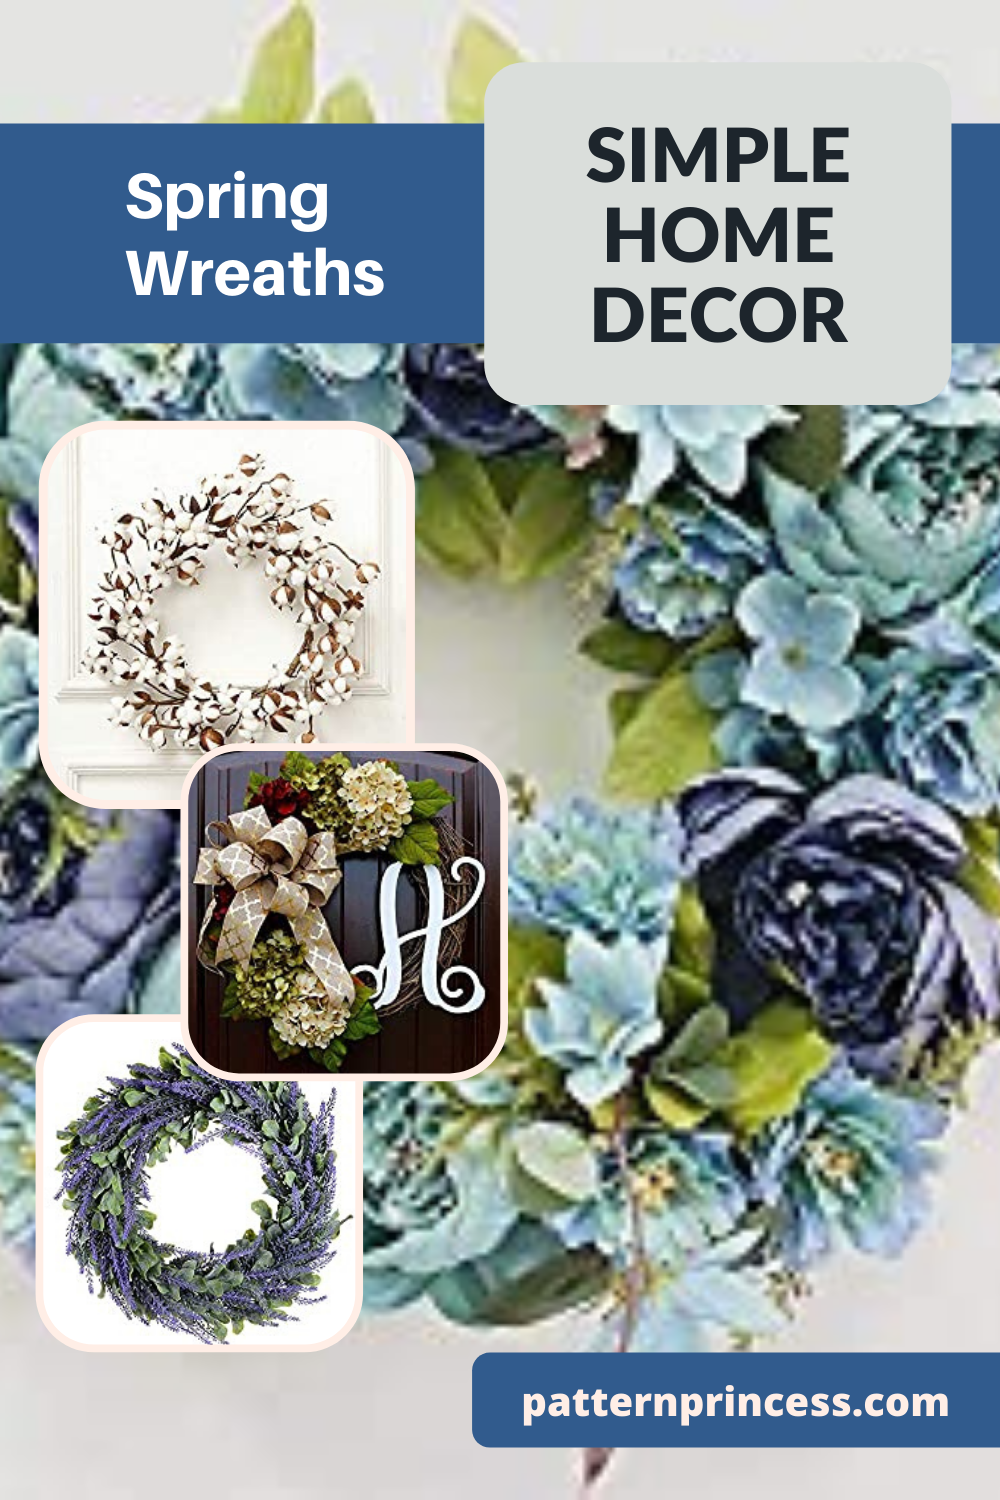 19 Gorgeous Spring Wreaths for Your Home Decor